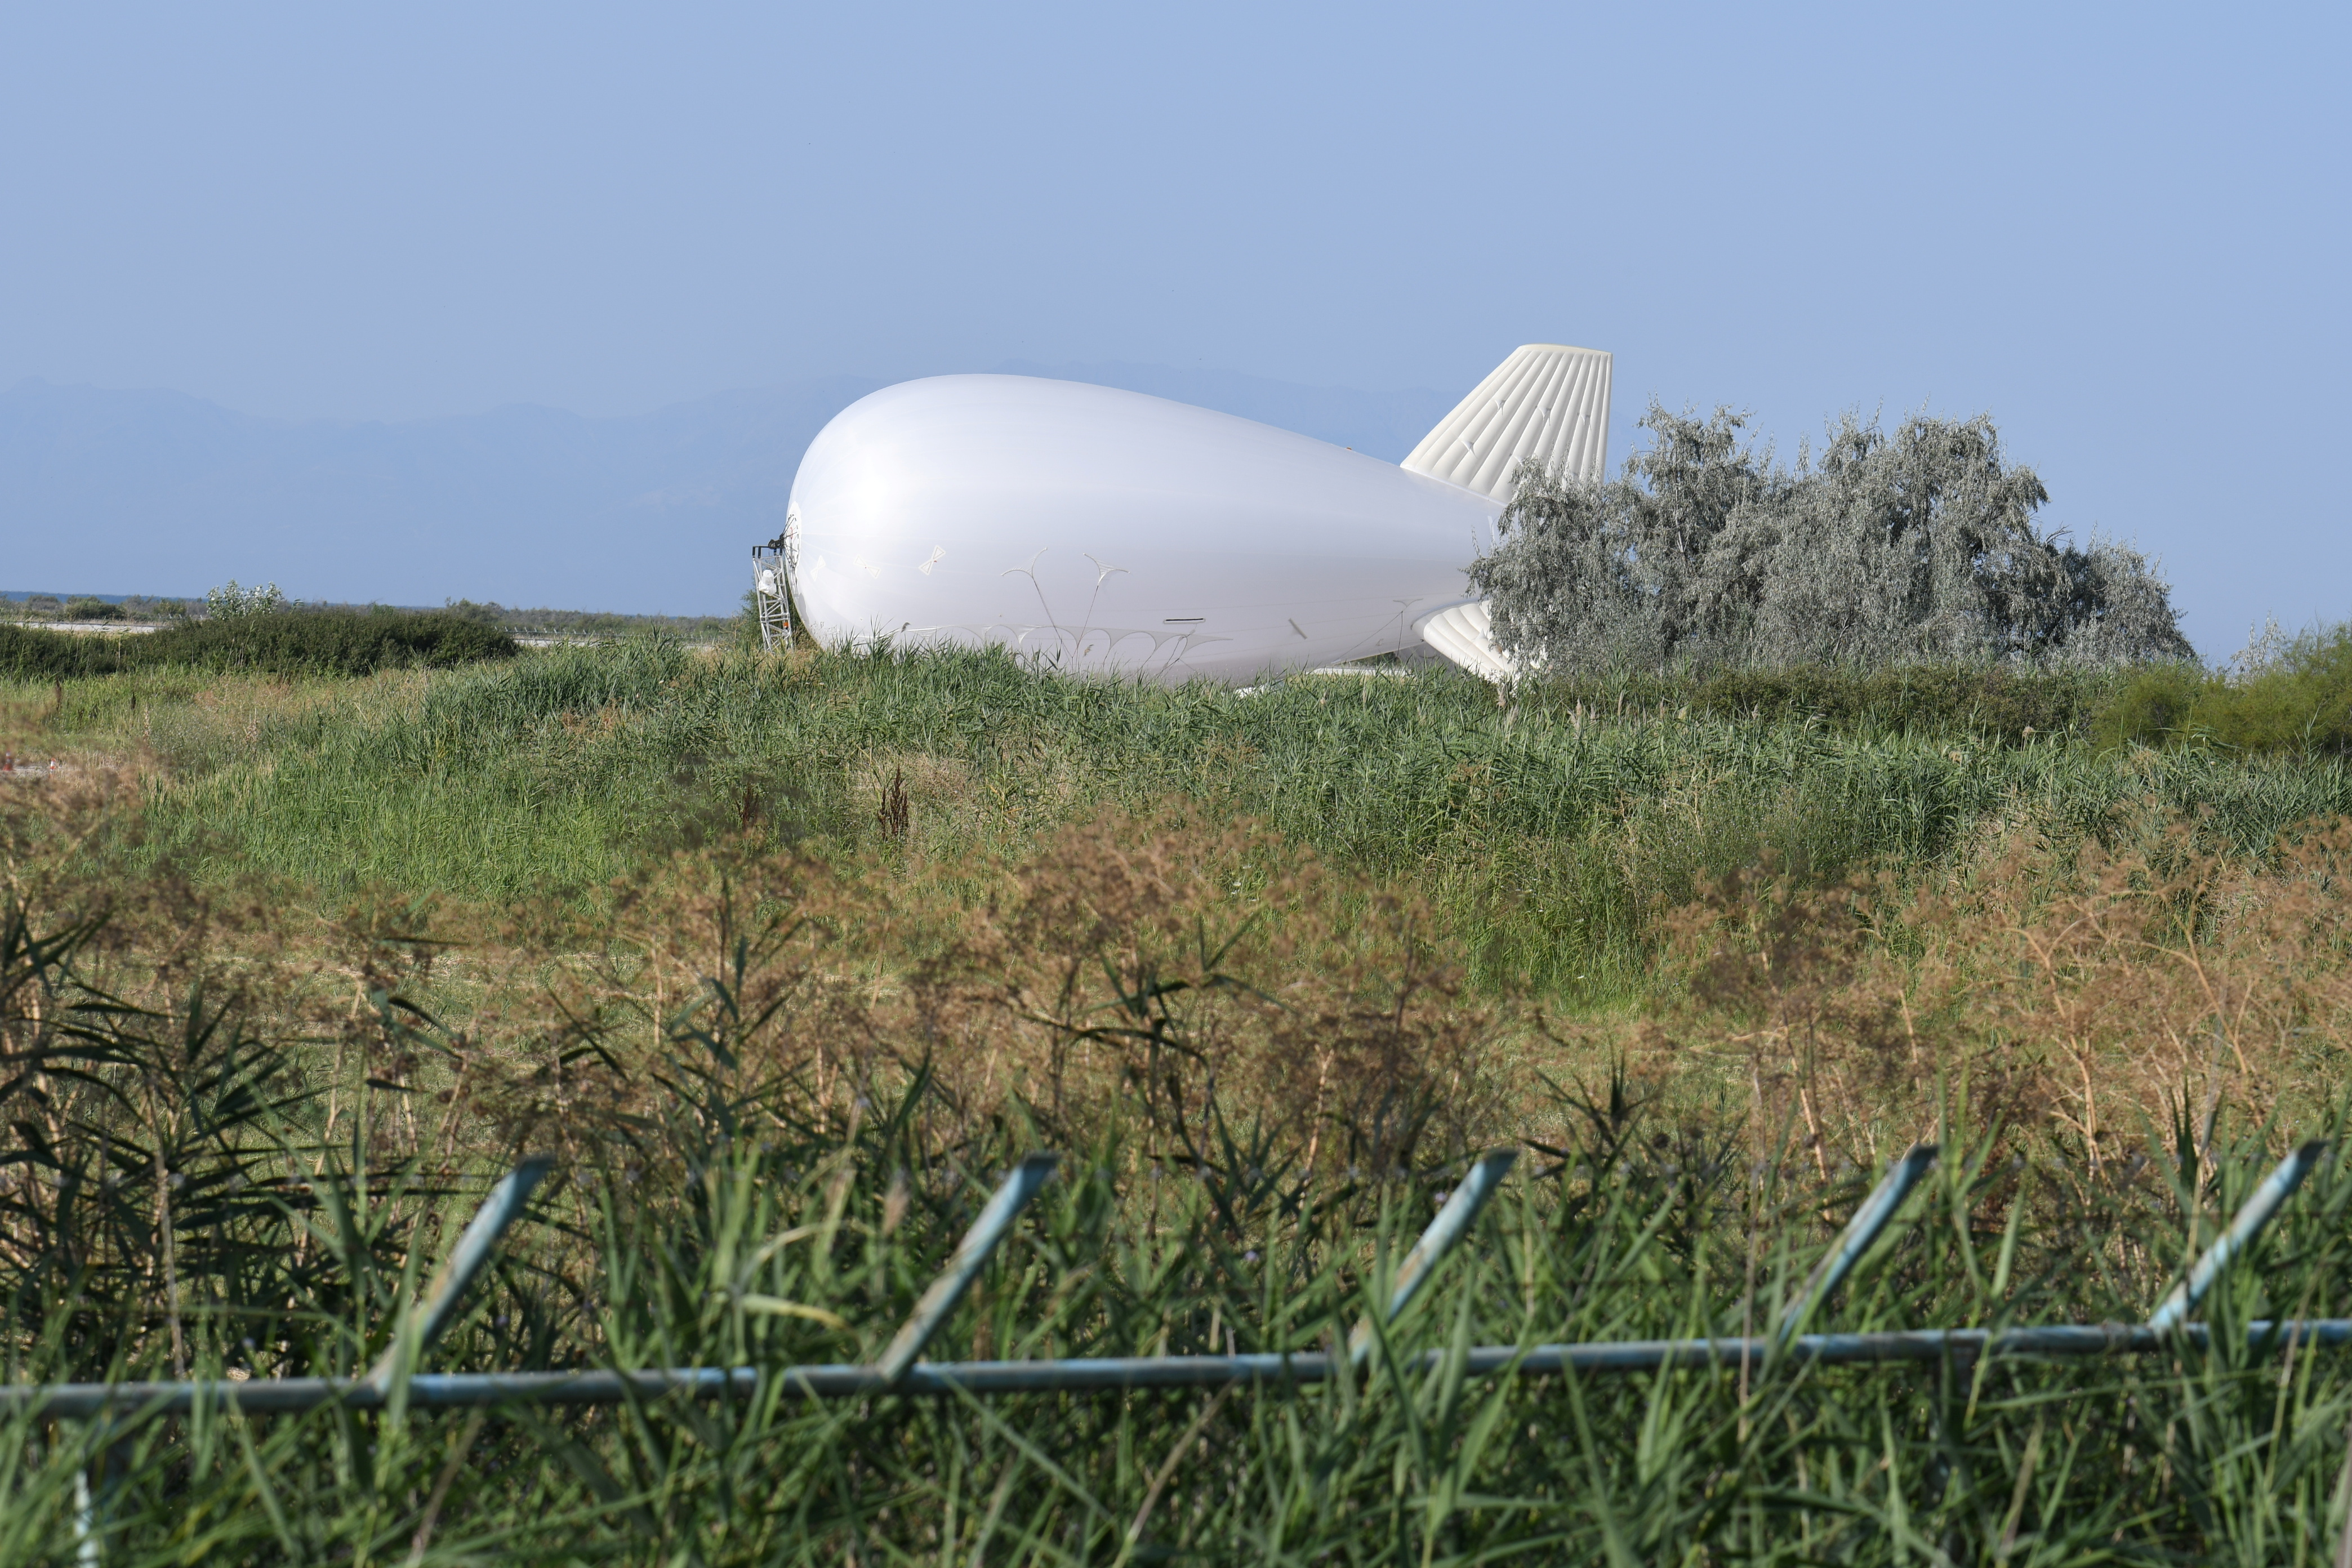 An aerostat balloon system of the European Union's border agency FRONTEX, equipped with high tech surveillance cameras, is seen at the airport of Alexandroupolis, Greece, July 28, 2021. REUTERS/Alexandros Avramidis